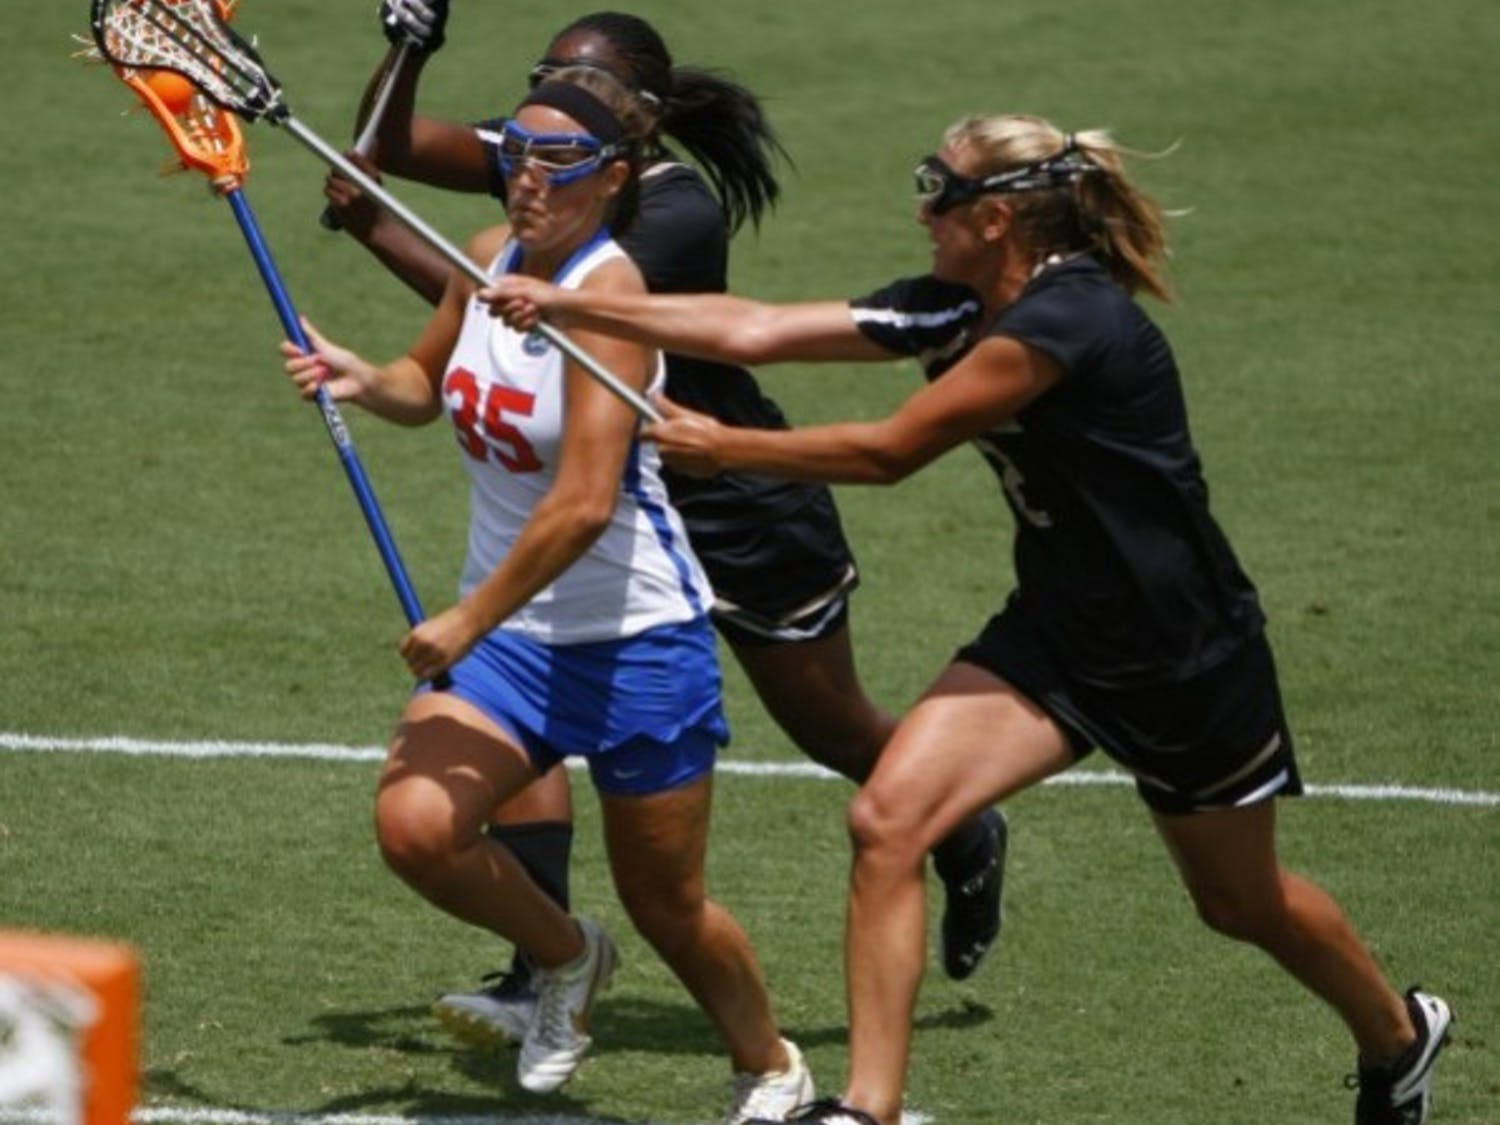 Florida attacker Gabi Wiegand drives between two defenders in a game against Vanderbilt on April 14. Wiegand scored the game-winning goal in Florida's 8-7 win over Northwestern on Saturday.